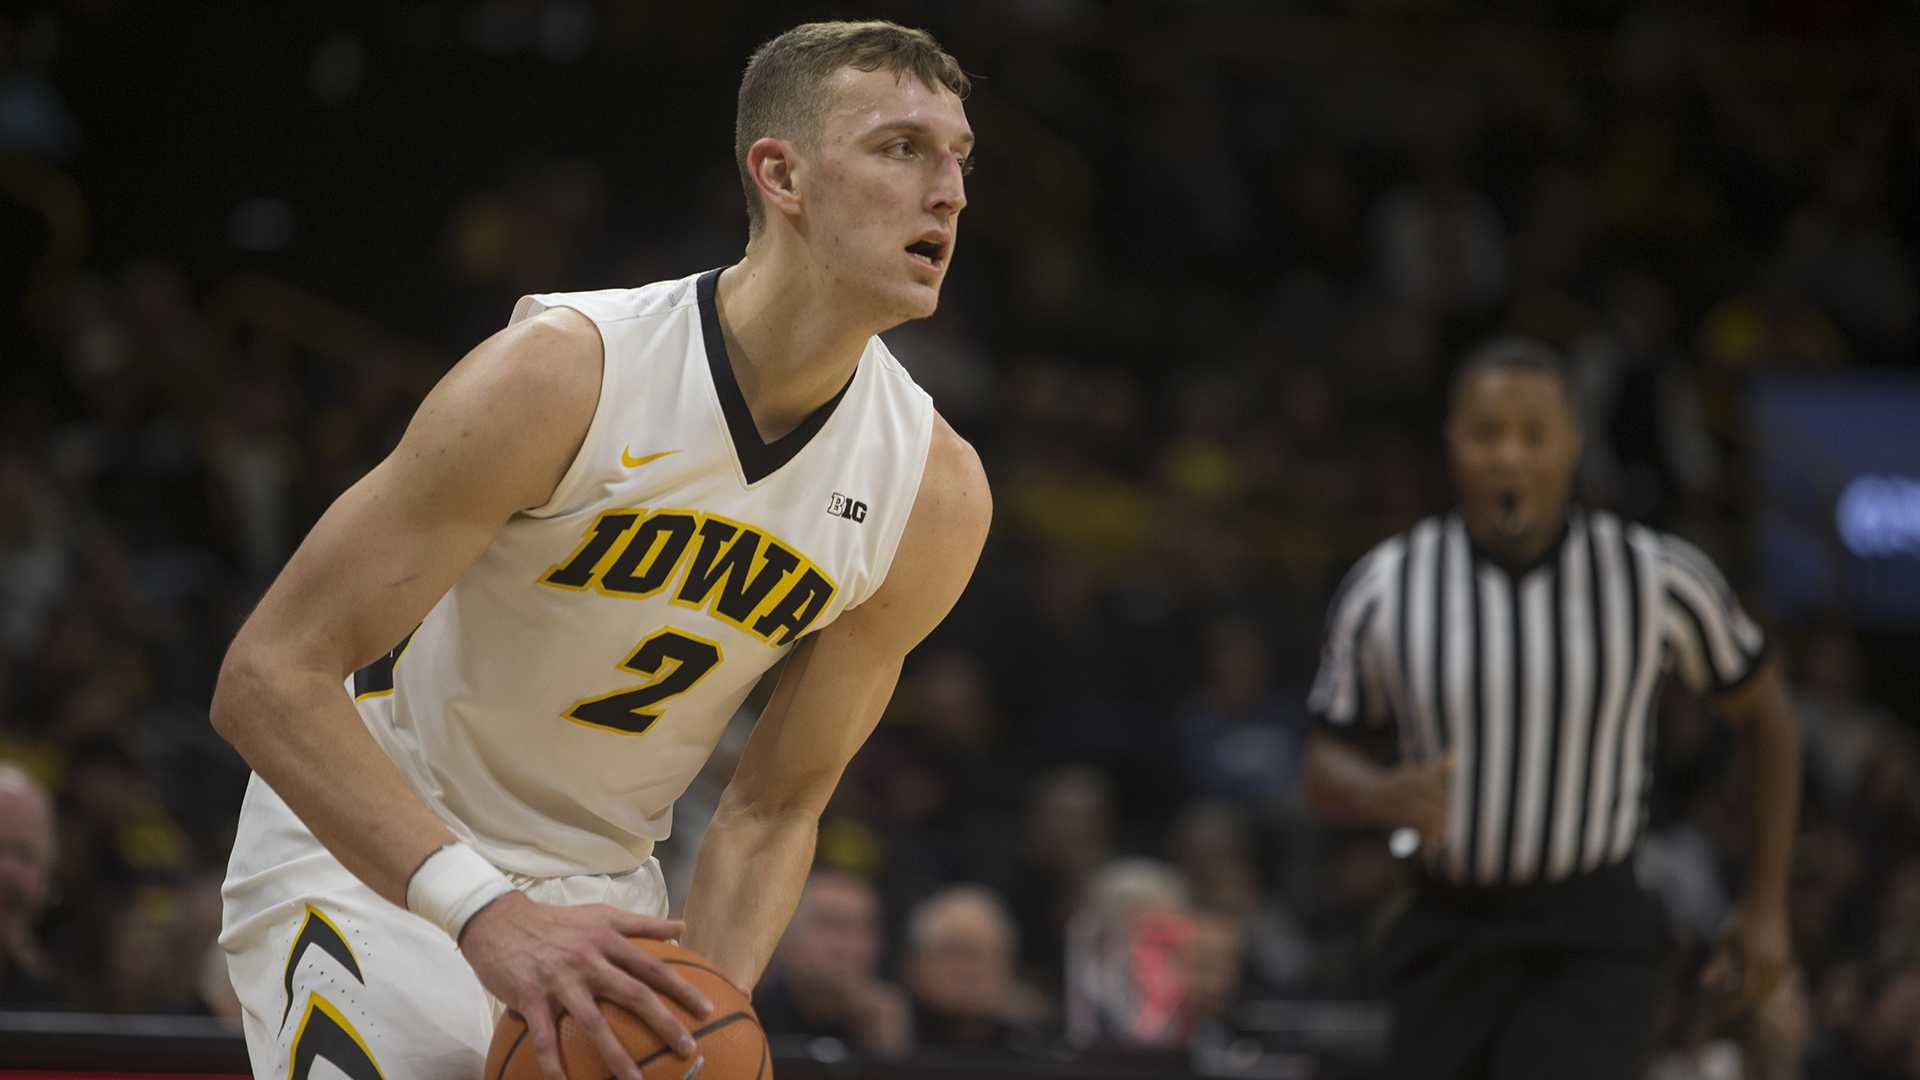 Iowa forward Jack Nunge prepares to pass during a basketball match between Iowa and Grambling State on Thursday, November 16, 2017. The Hawkeyes defeated the Tigers, 85-74. (Shivansh Ahuja/The Daily Iowan)